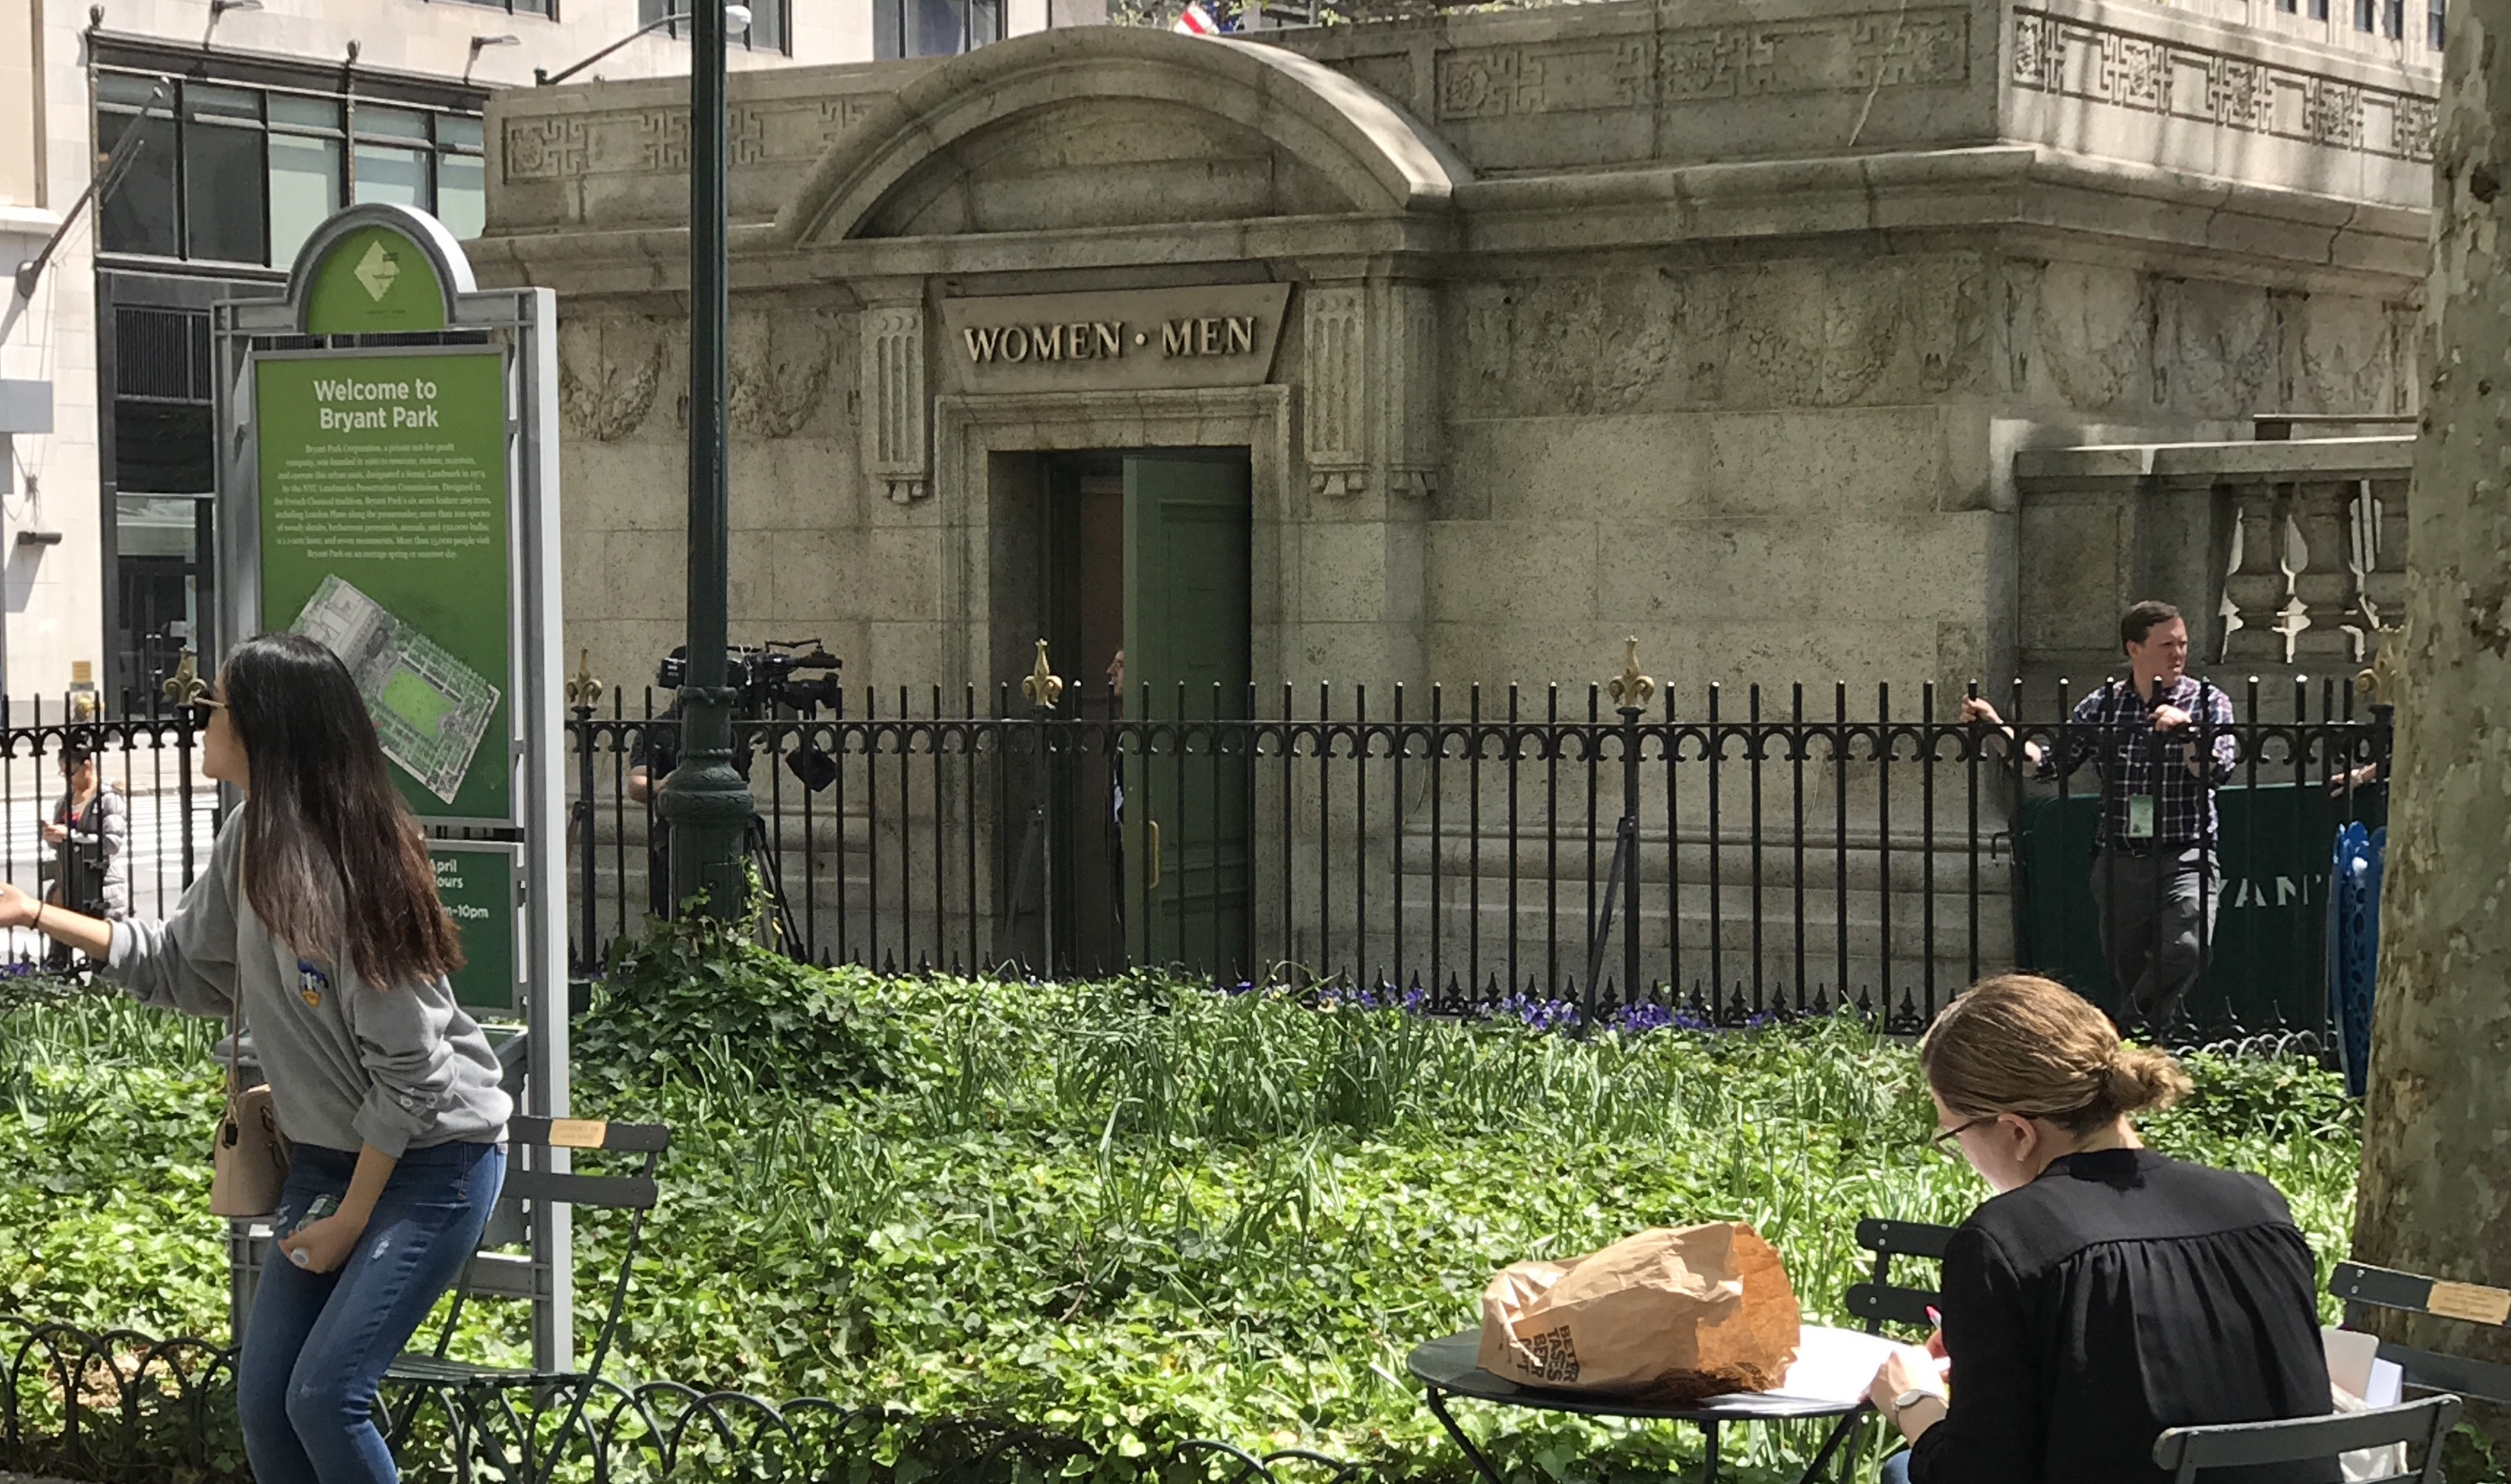 First look at NYC's most luxurious public restroom after its $300,000 makeover